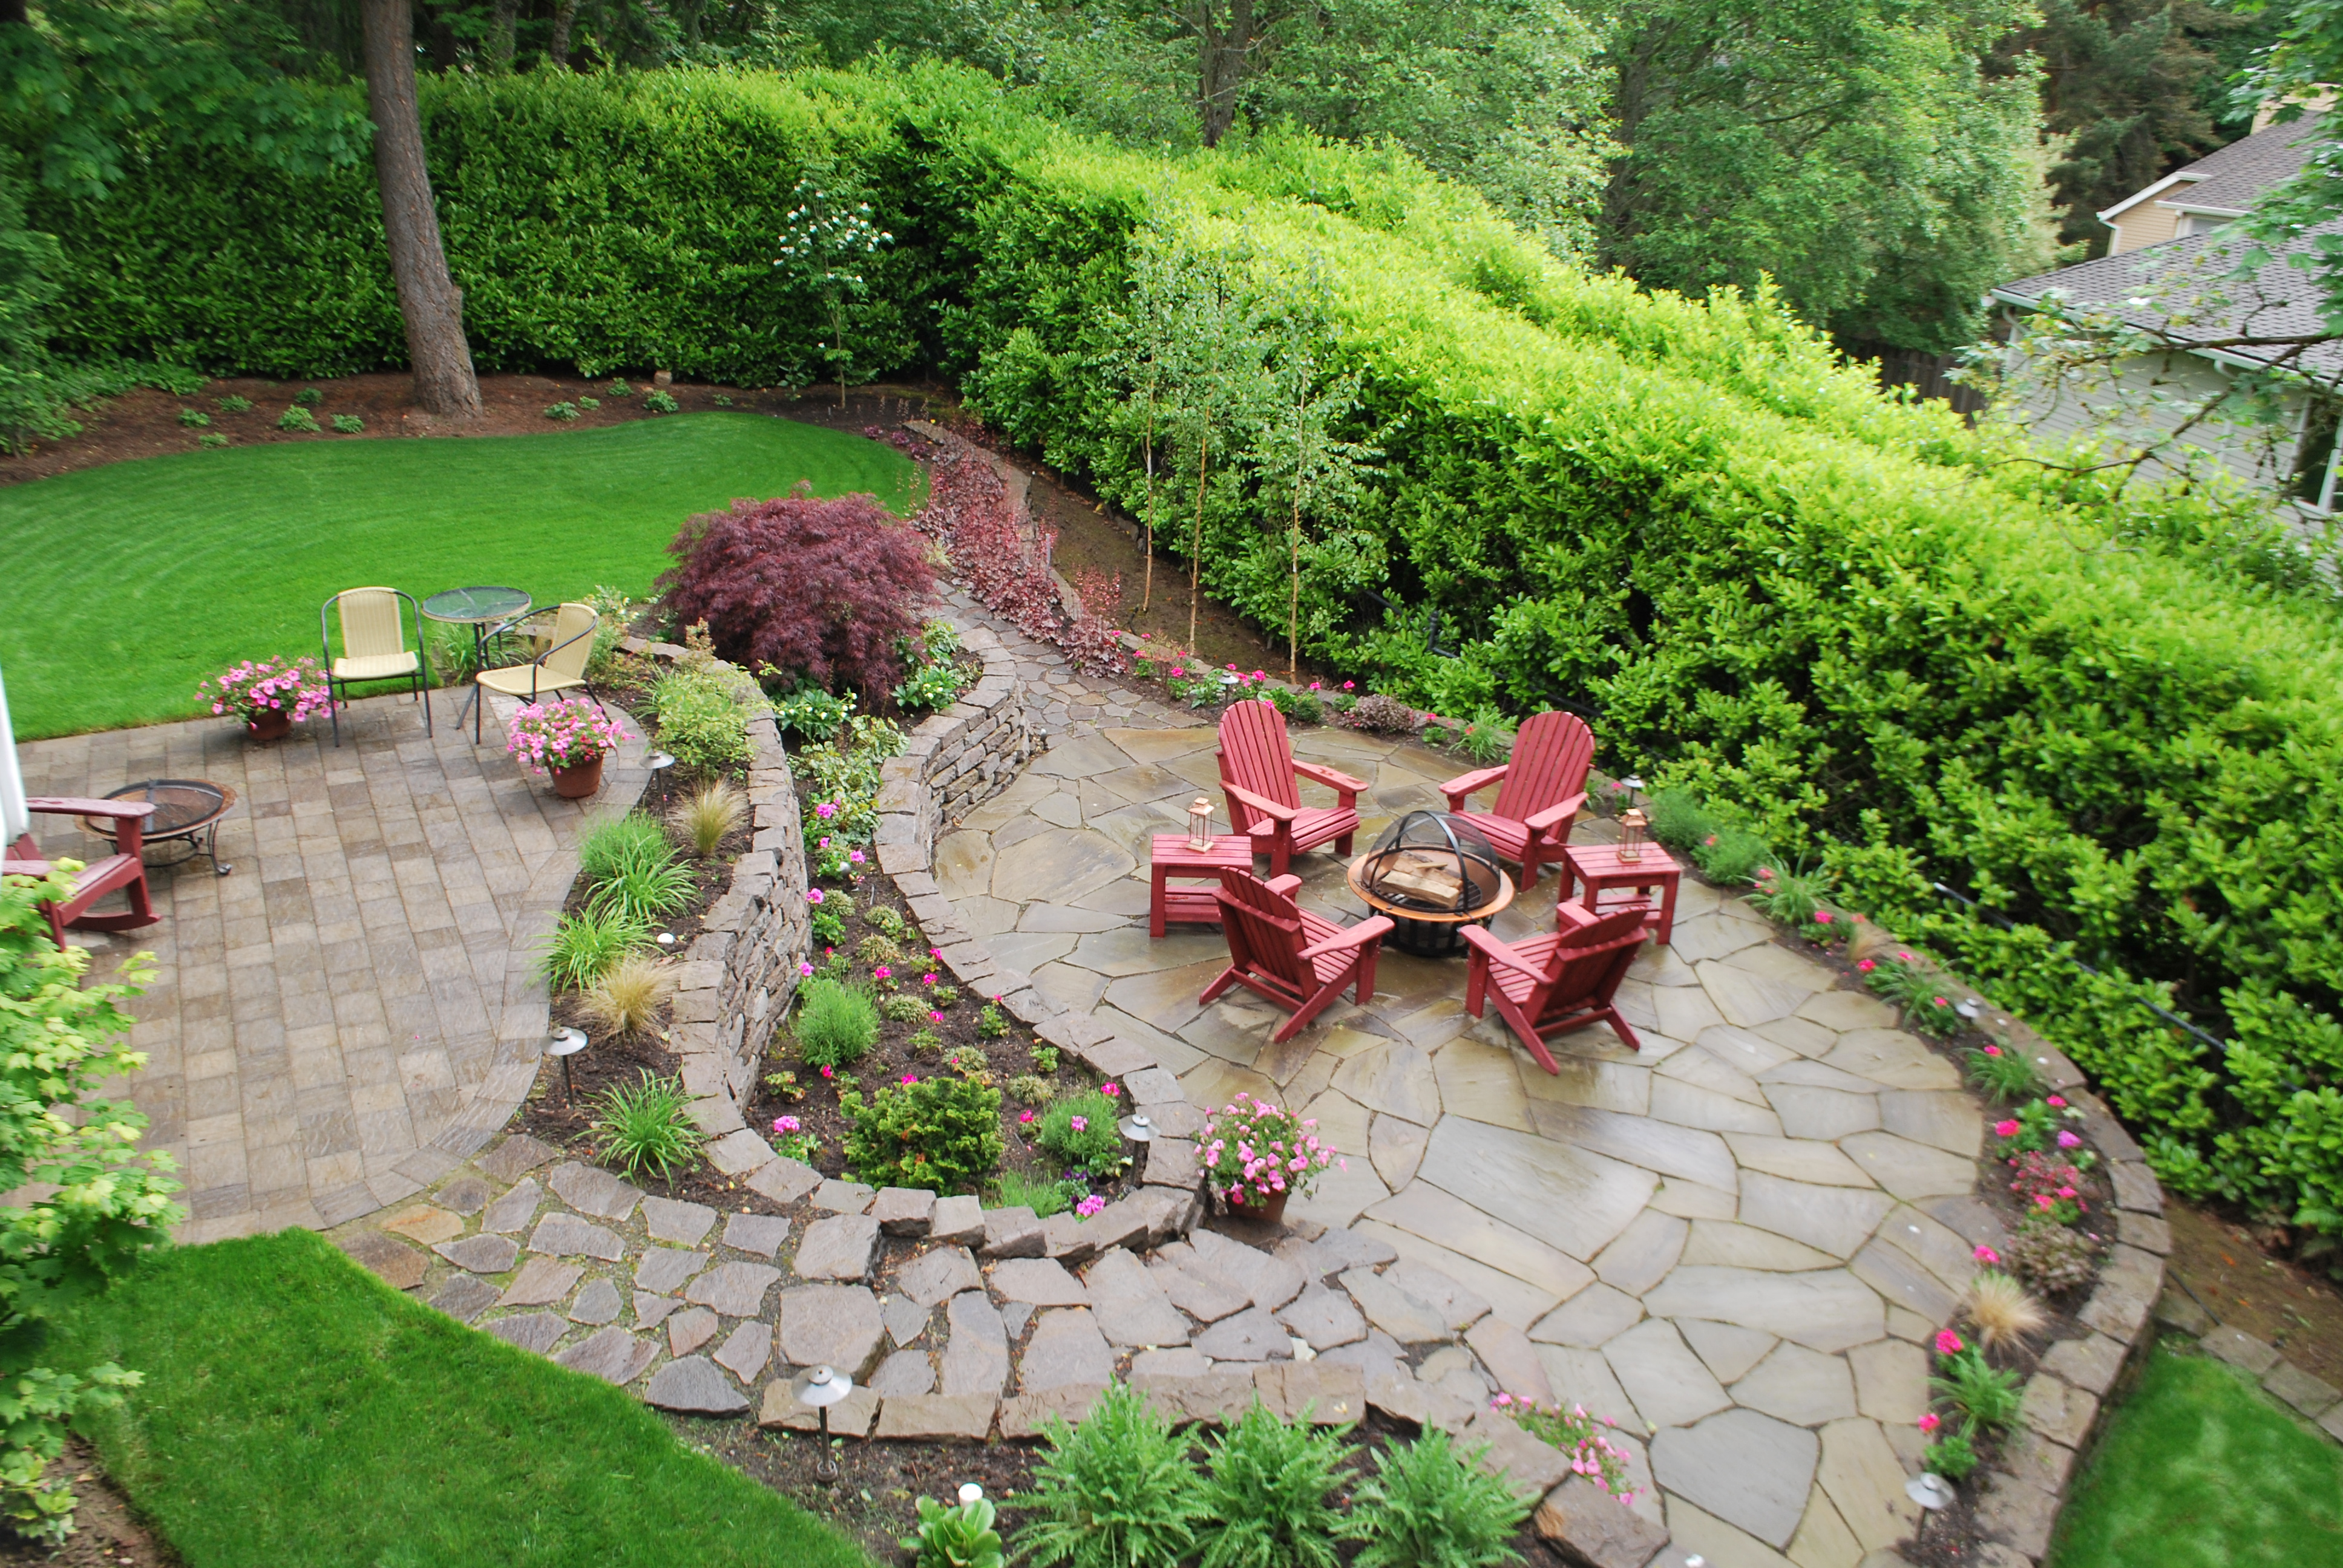 Unique Landscape Design Challenge Results in a Beautiful Outdoor ...